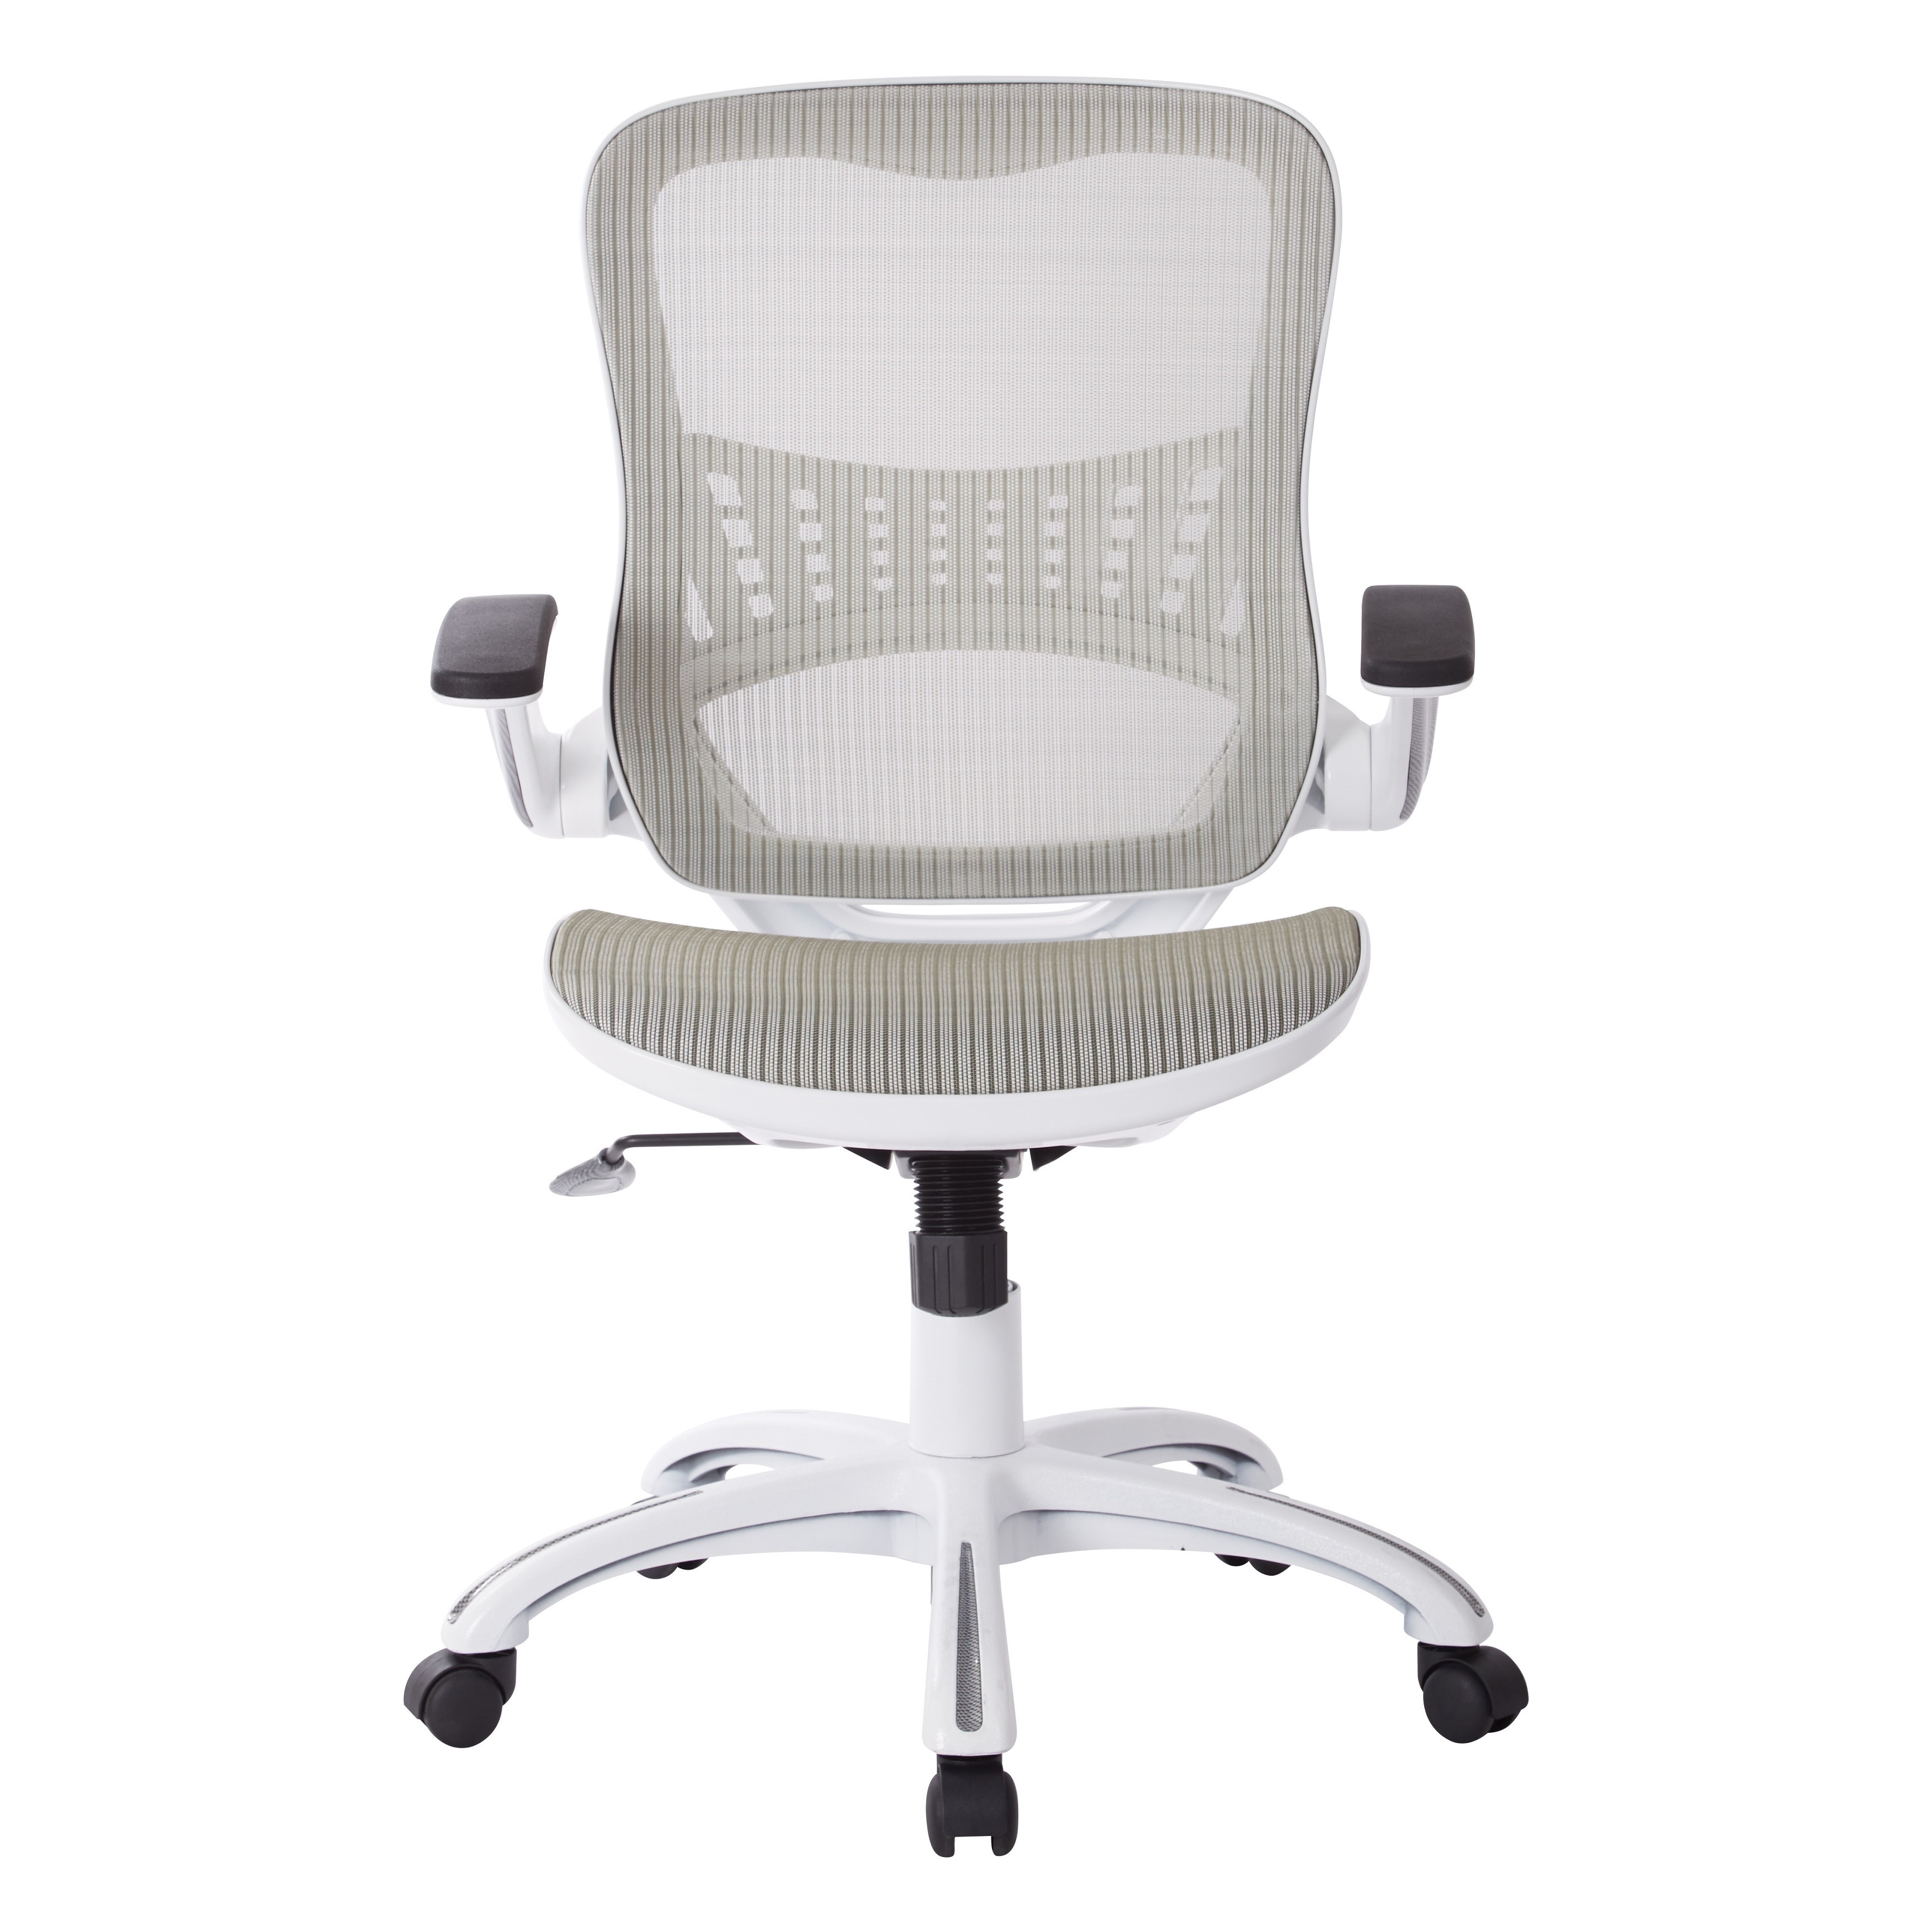 Riley fice Chair with White Mesh Seat and Back Free Shipping